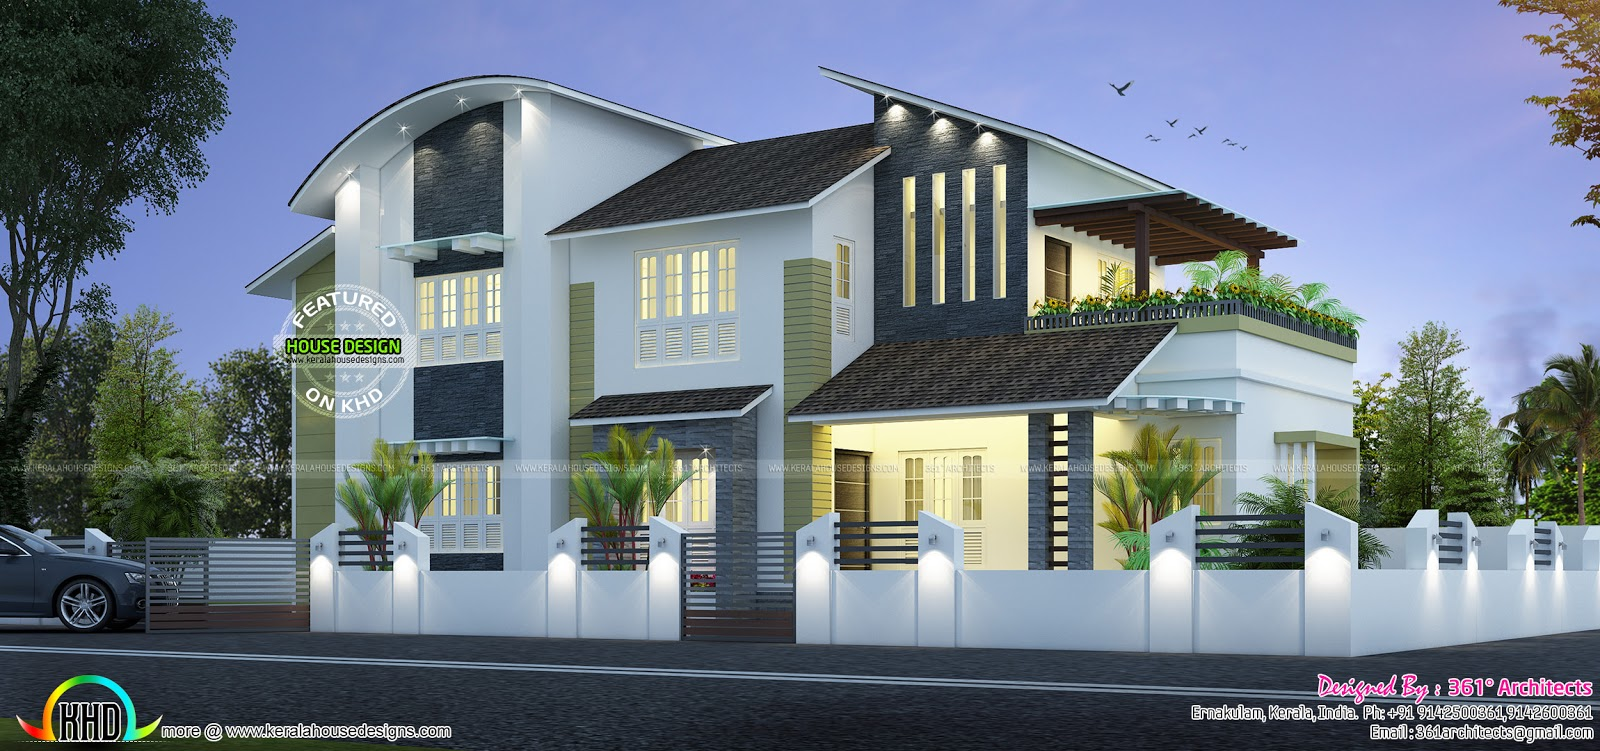 New modern house 35 lakhs kerala home design and floor plans for New modern style homes